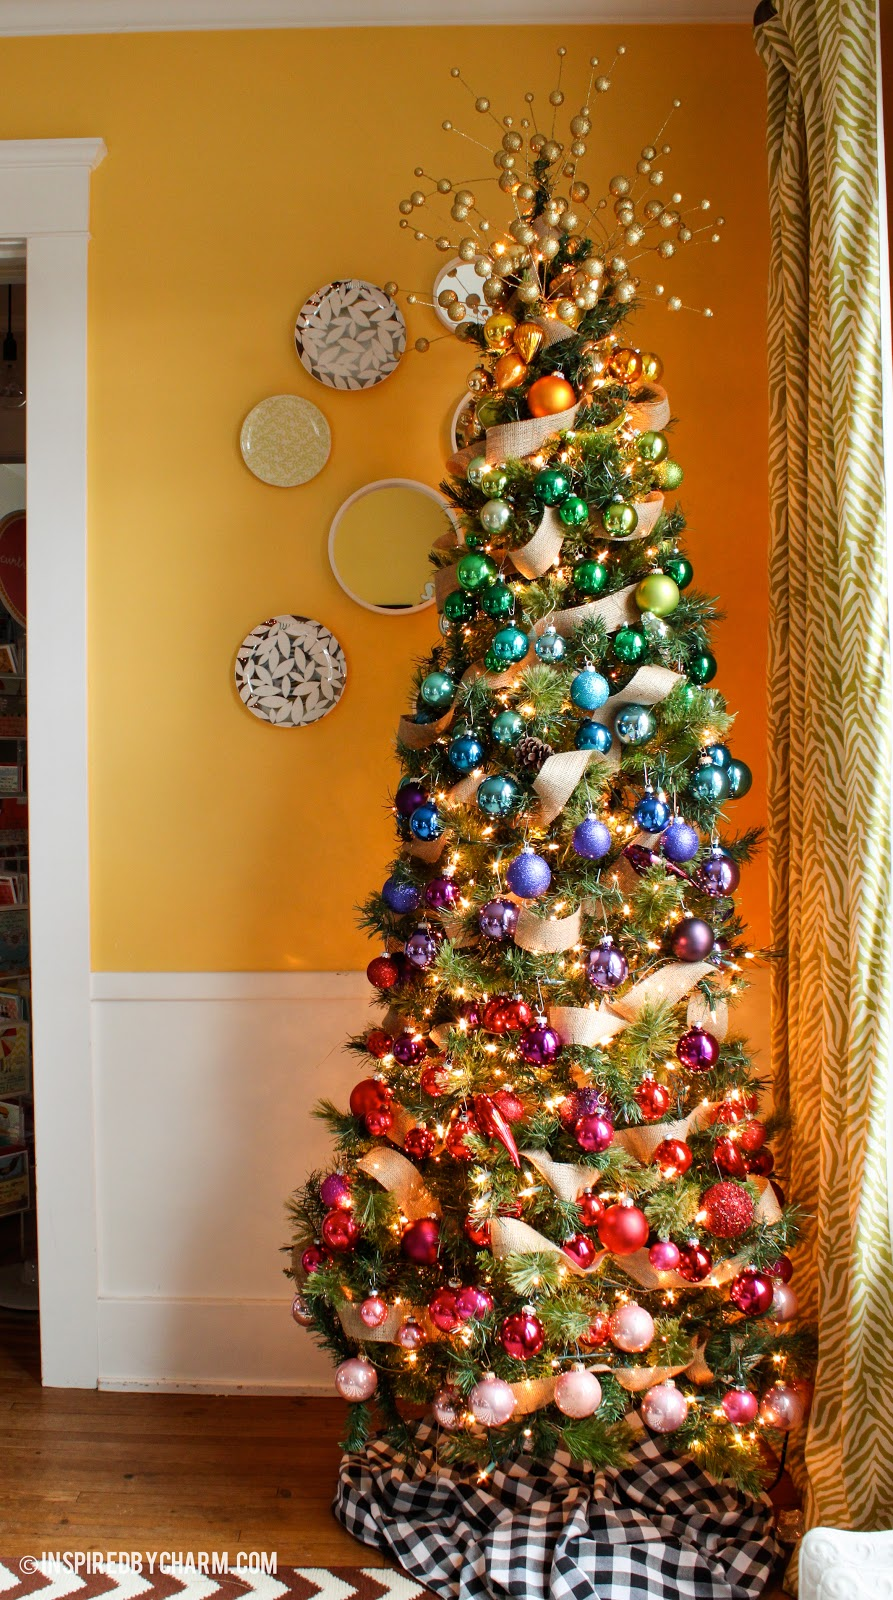 AD-Christmas-Tree-Ideas-For-An-Unforgettable-Holiday-30